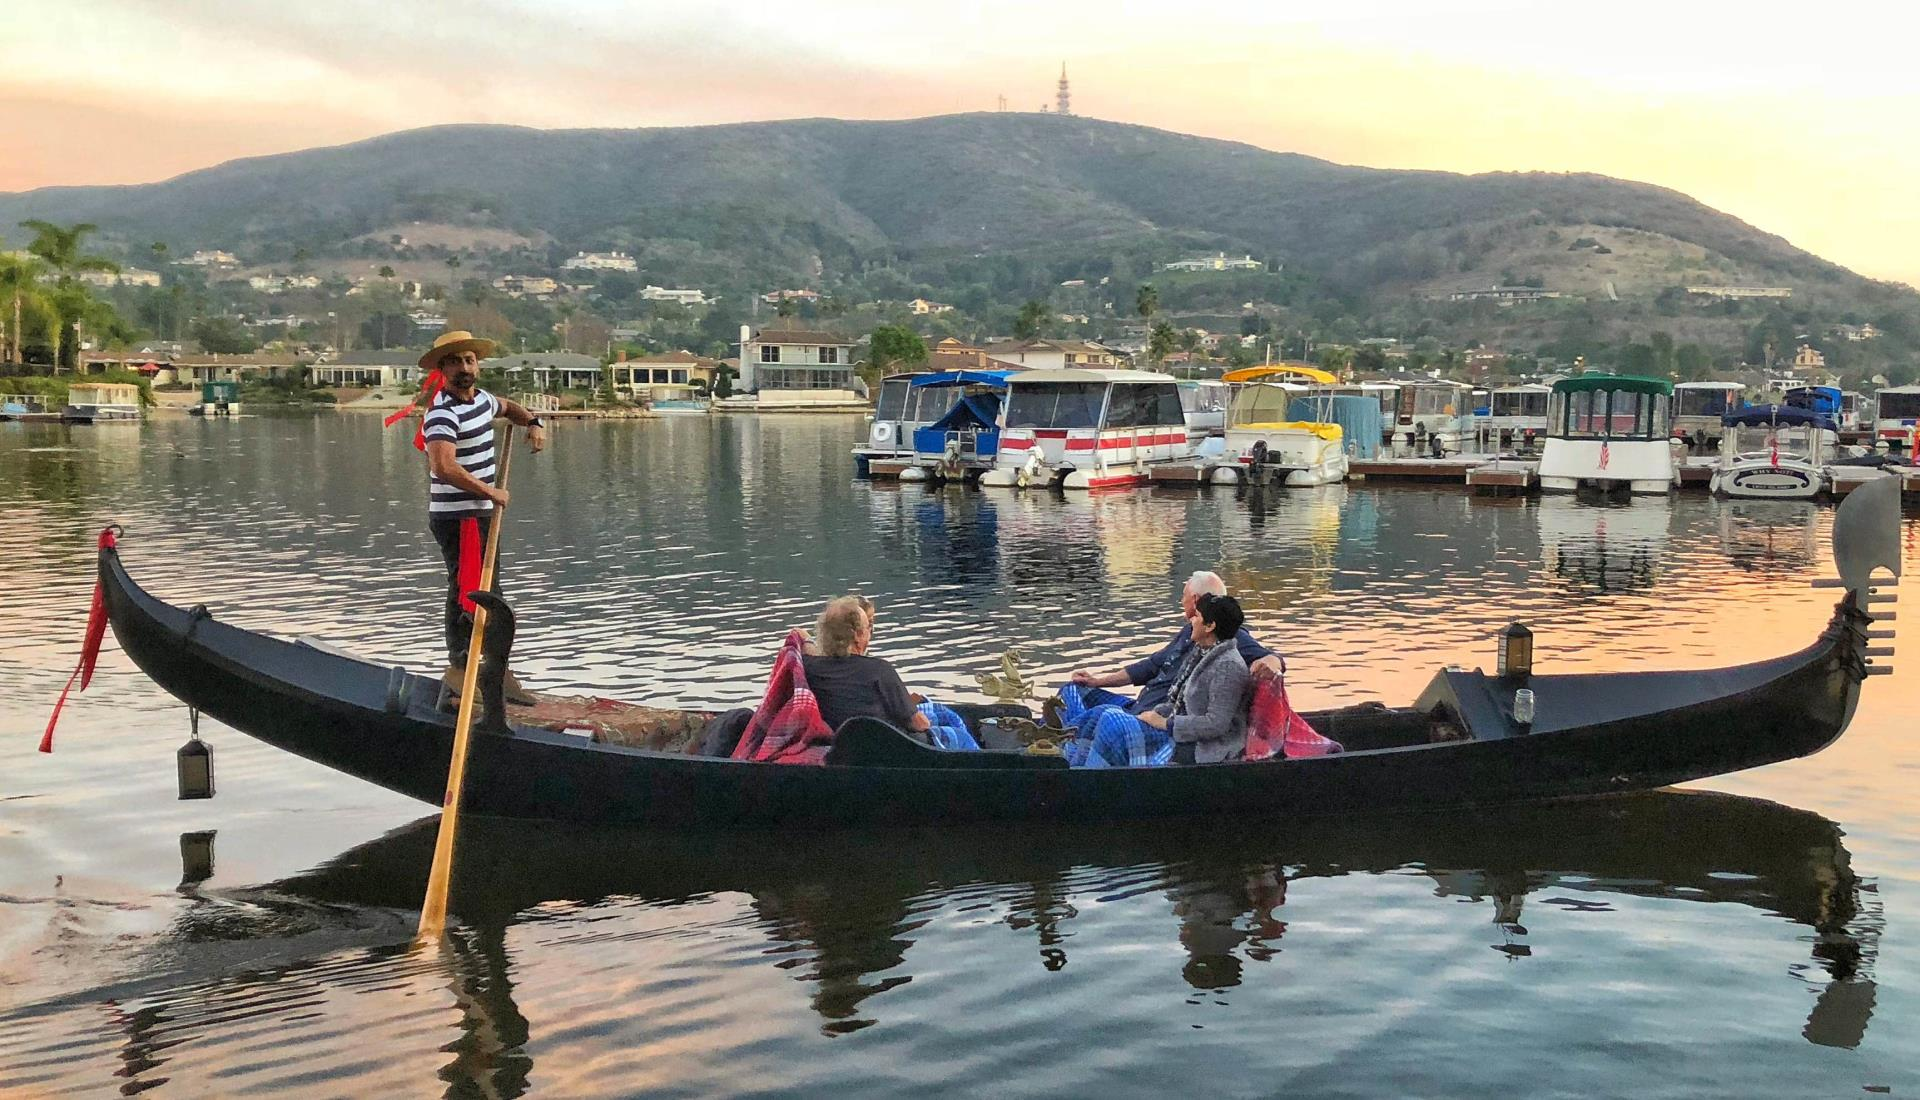 Lake San Marcos Gondola at Sunset by Douglas Vigon